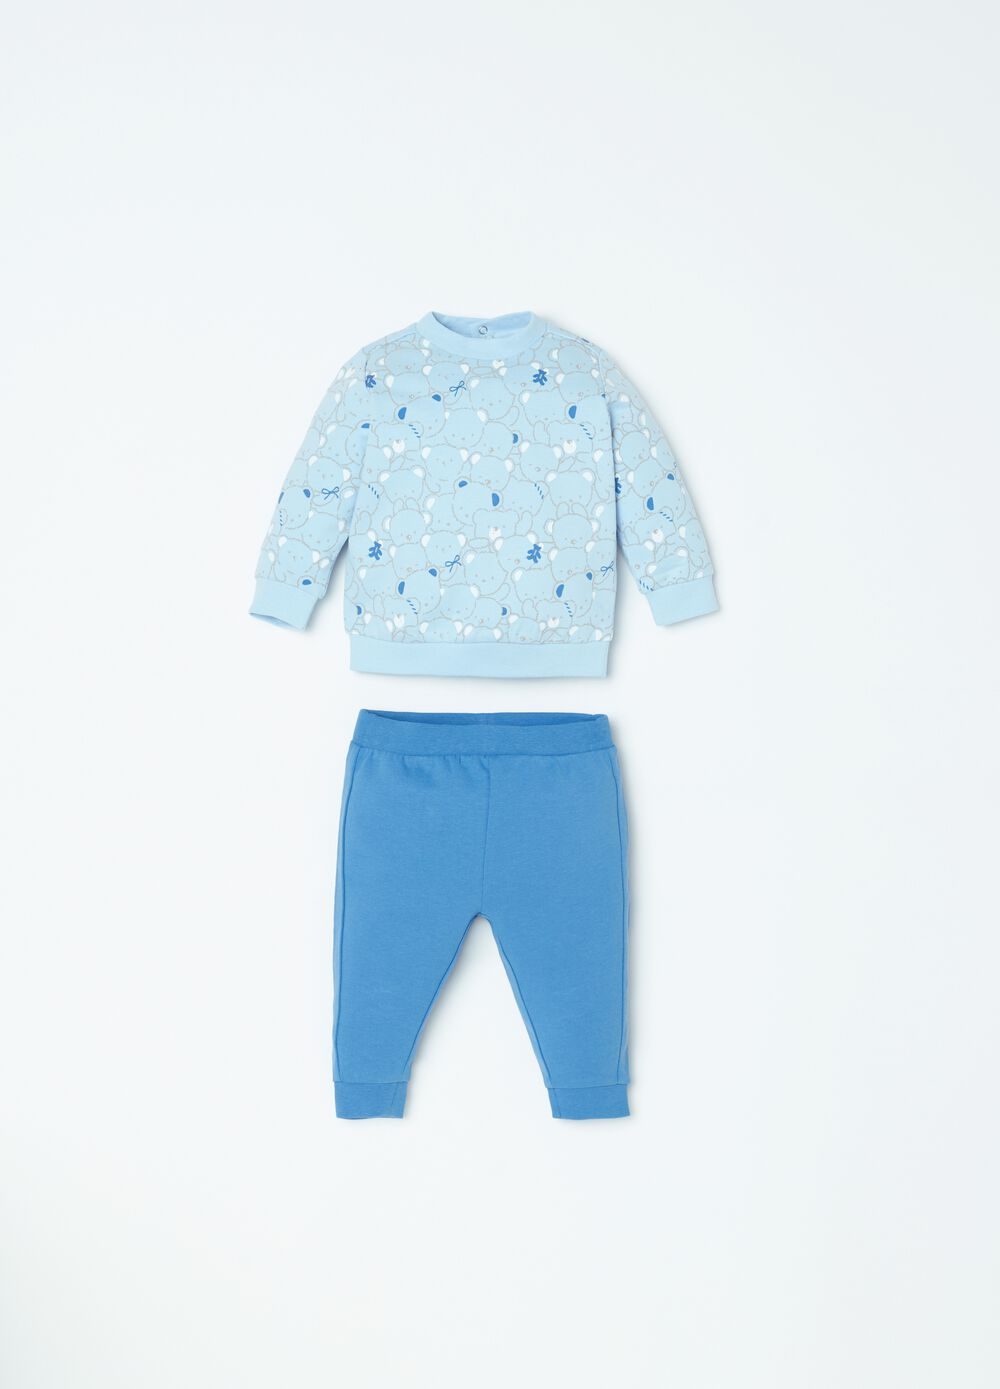 Sweatshirt and trousers set with teddy bear pattern